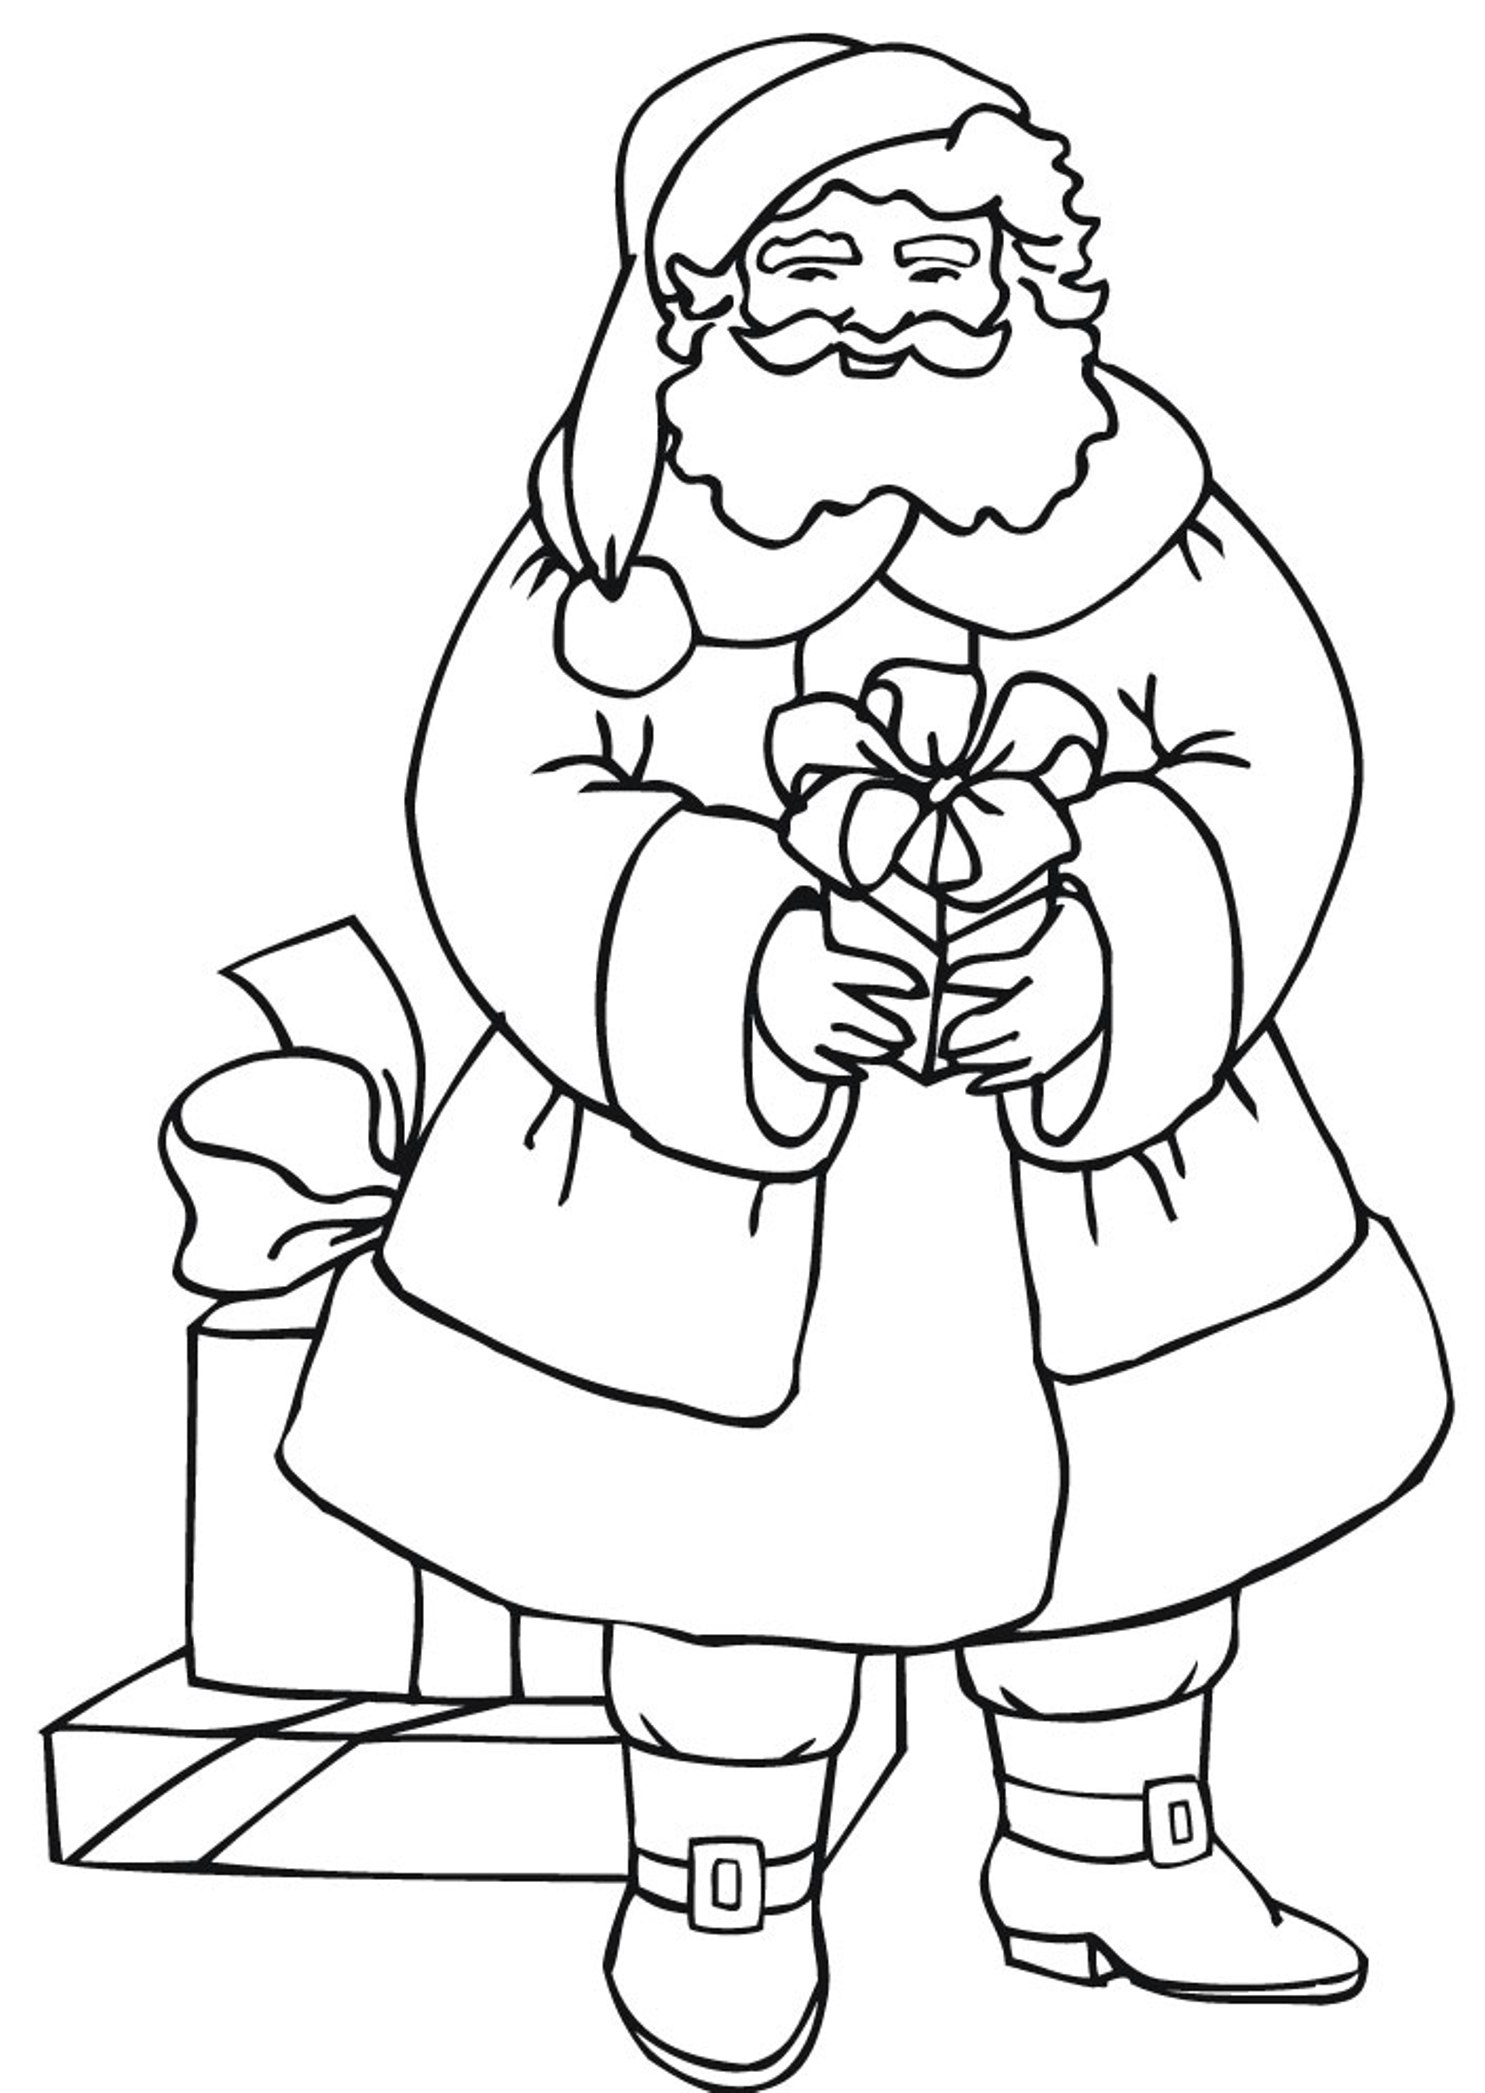 Santa Claus Line Drawing at GetDrawings.com | Free for personal use ...